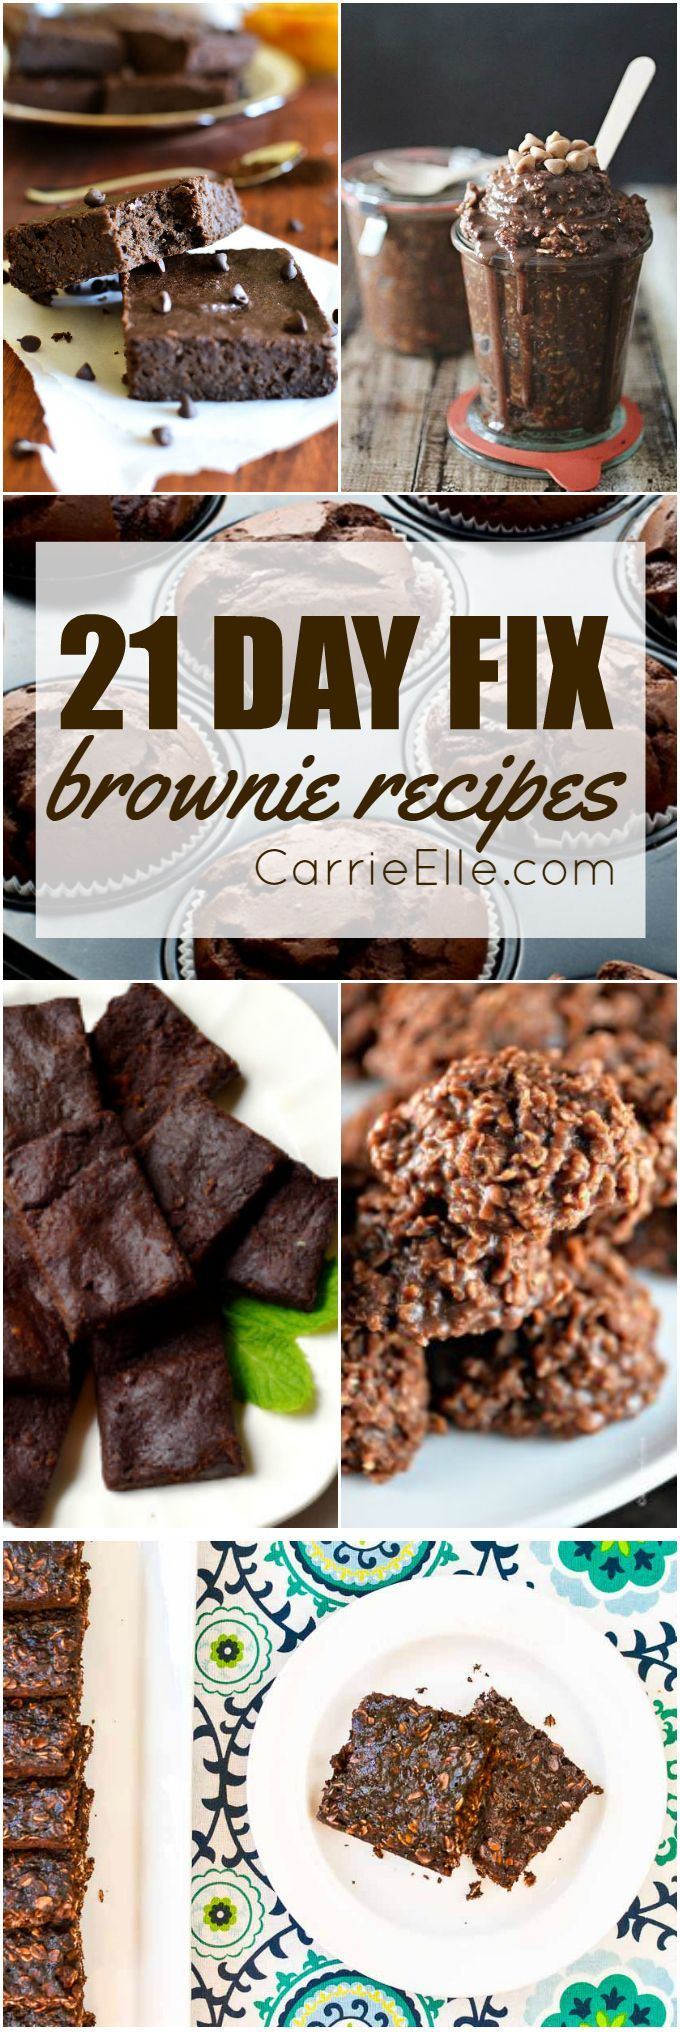 These 21 Day Fix brownie recipes are sure to satisfy your chocolate cravings...and there are lots of great recipes to try here!